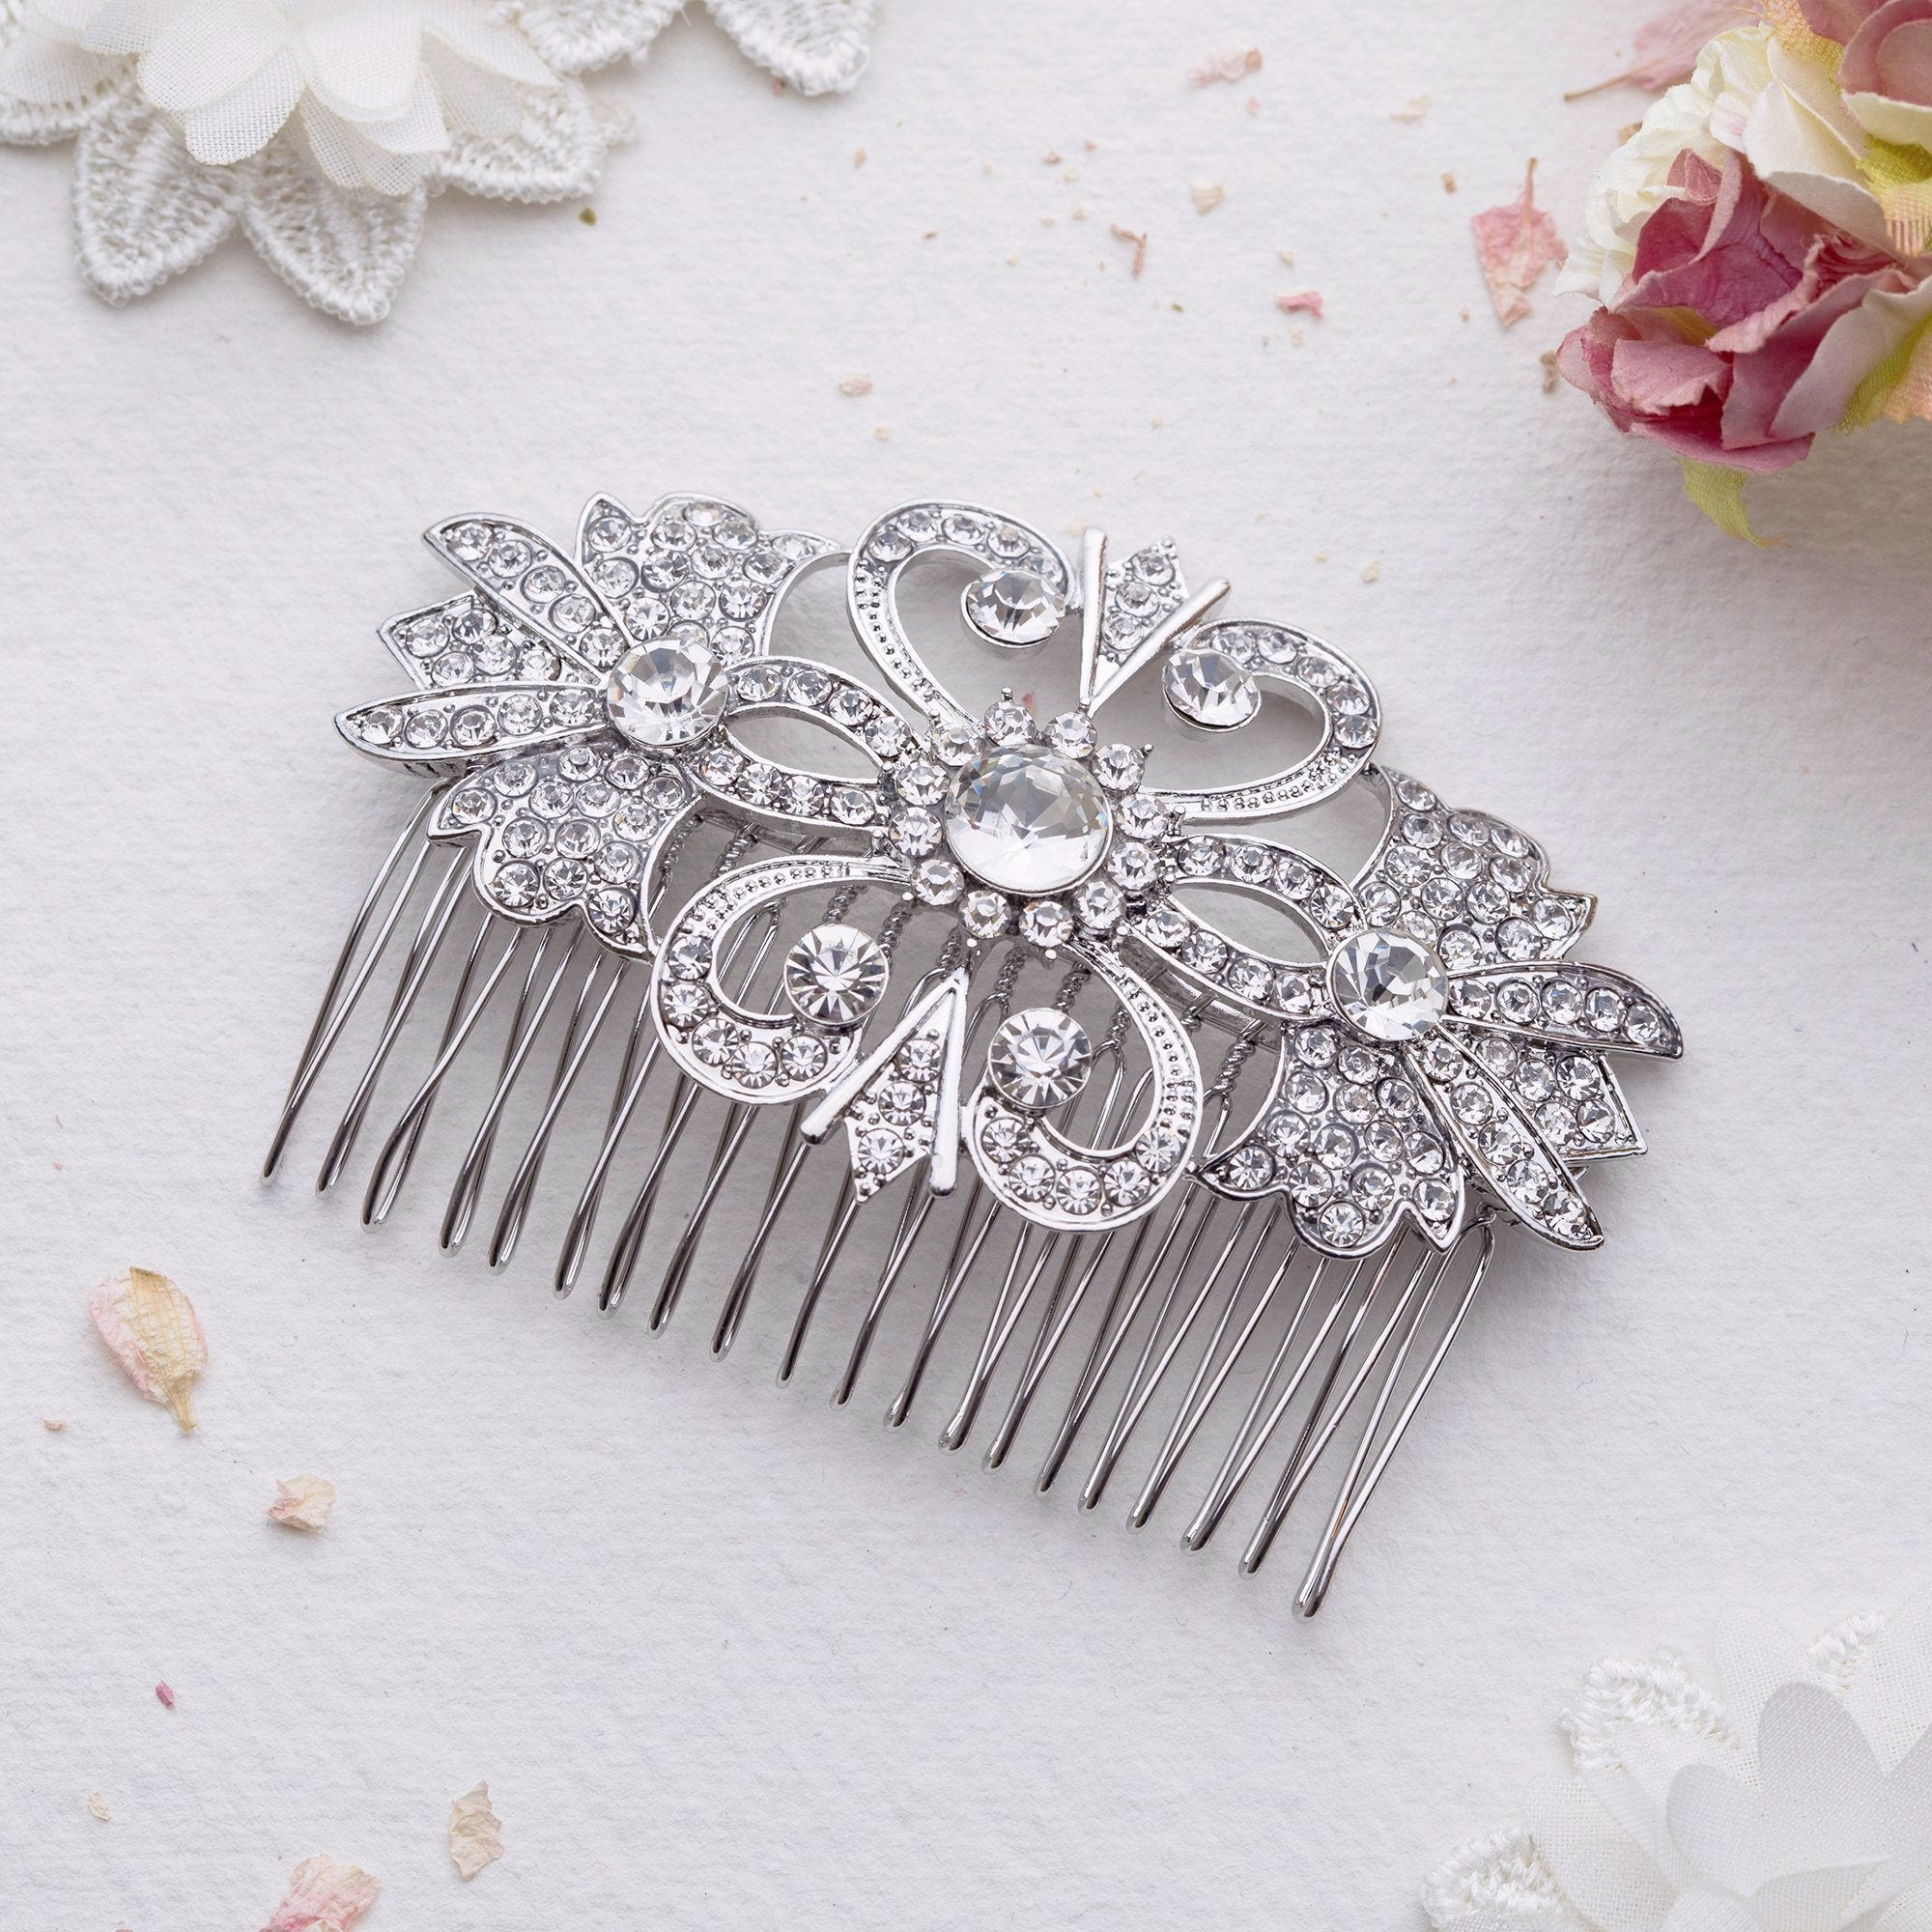 Juana crystal hair comb